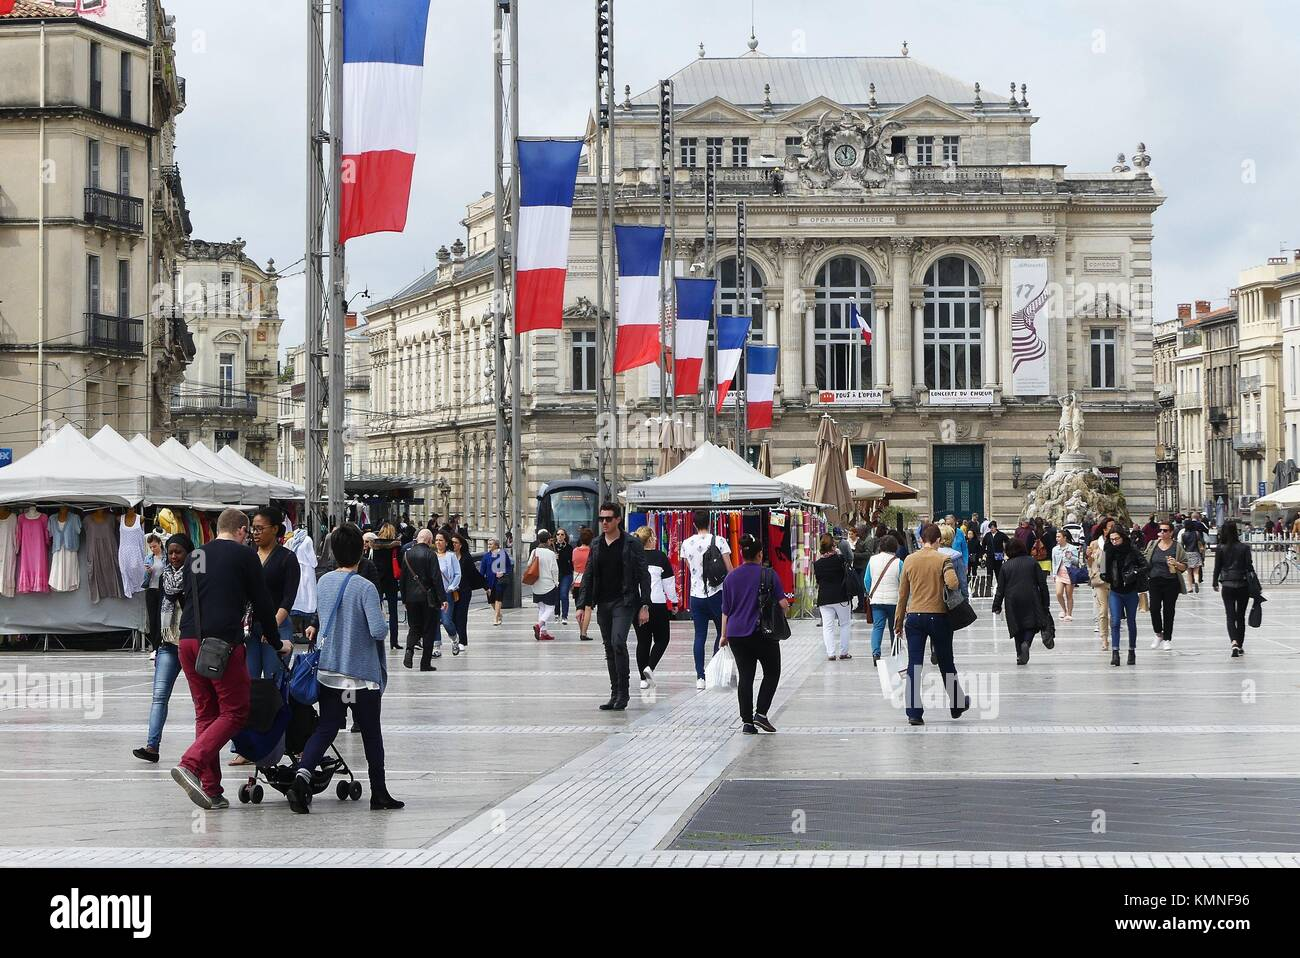 Place Comedie in Montpellier, France, is a positive example of urban renewal. - Stock Image